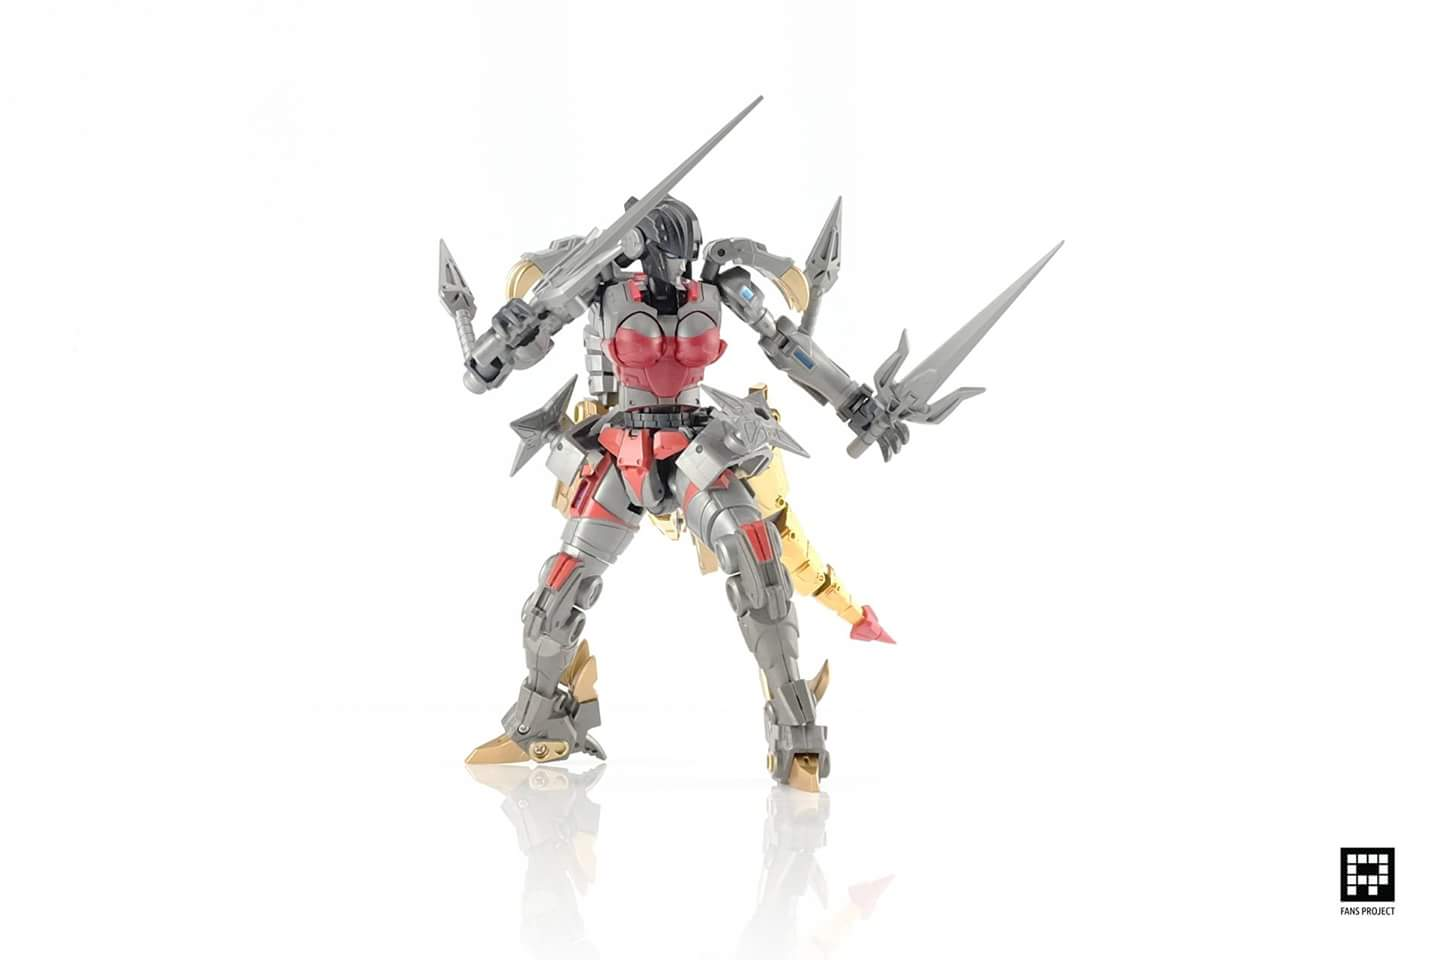 [FansProject] Produit Tiers - Jouets LER (Lost Exo Realm) - aka Dinobots - Page 3 C2h8NBWv